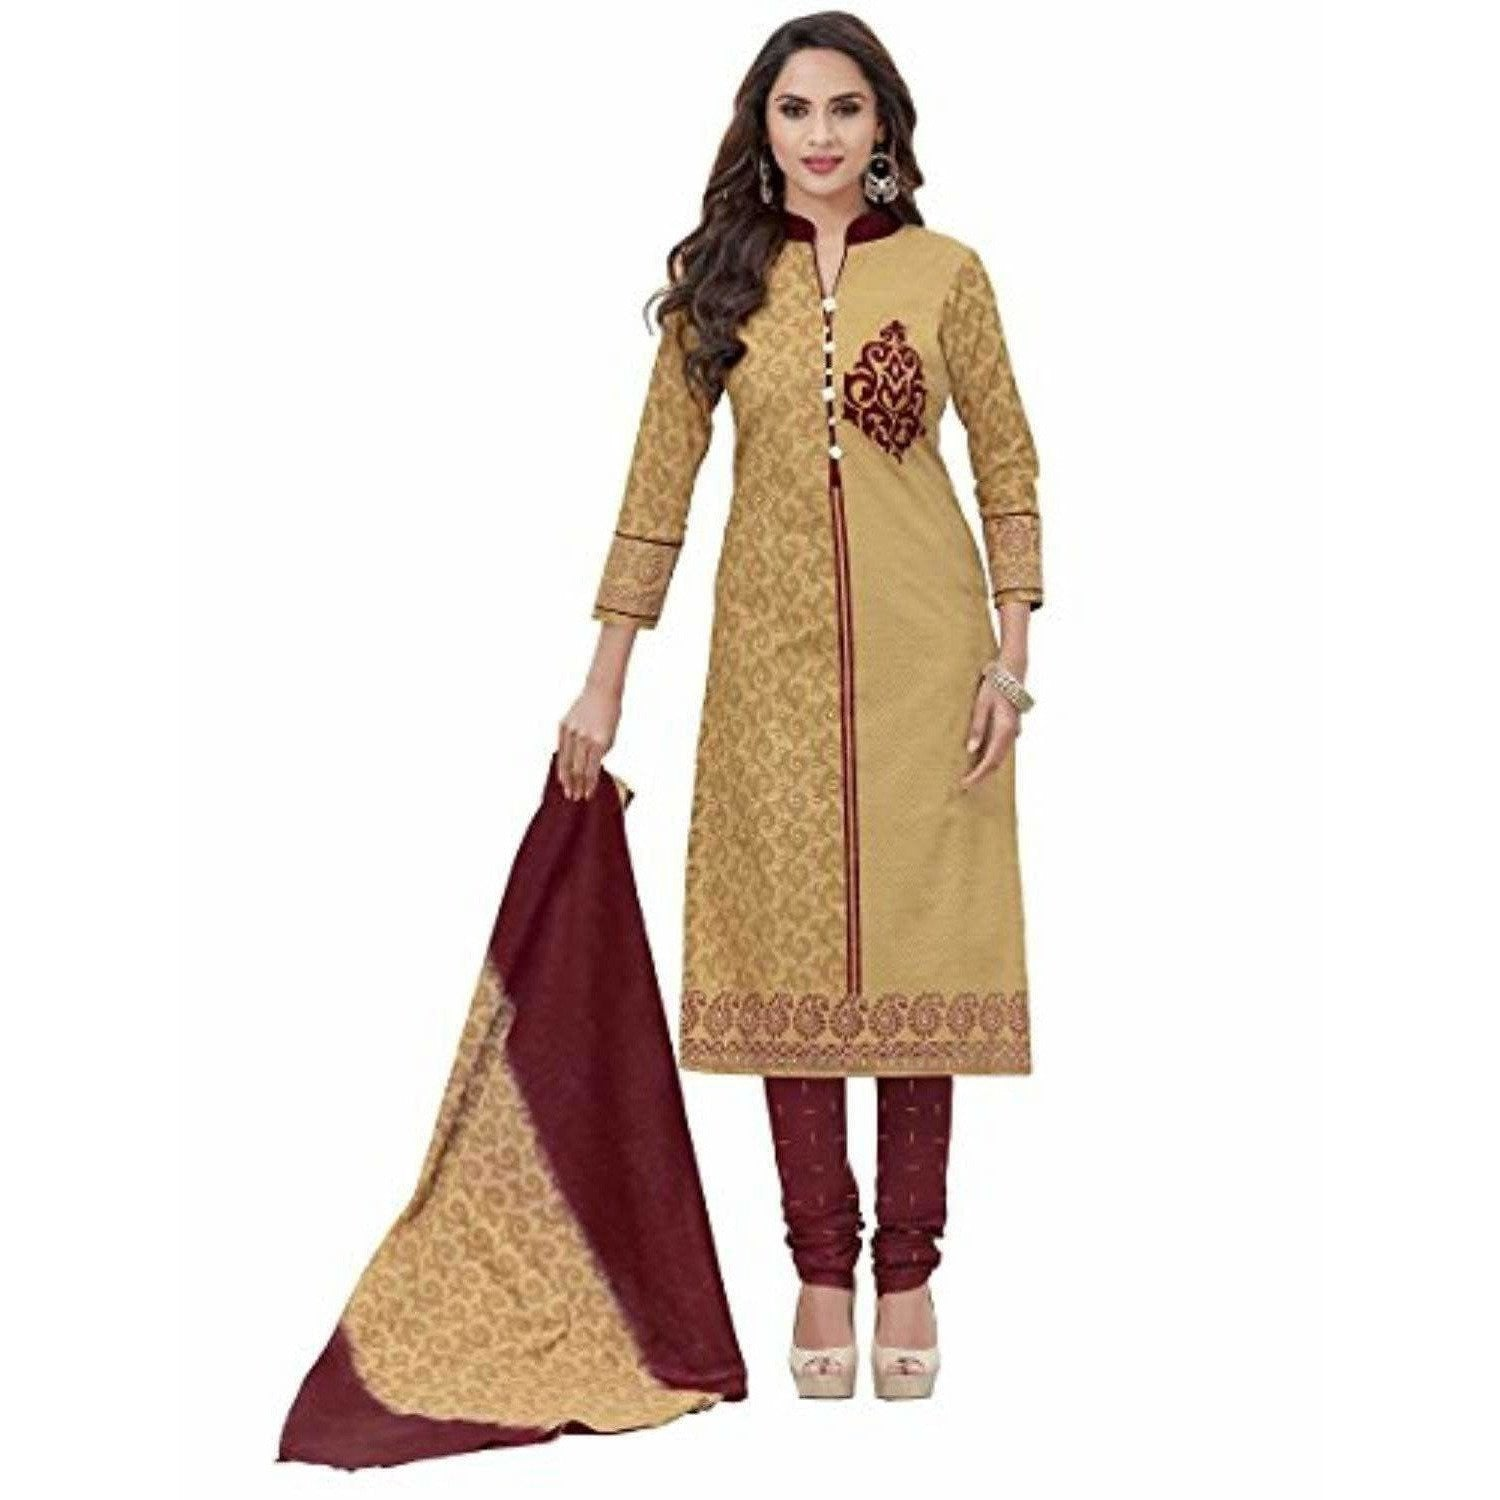 Unstitched Chudidar Suit Dress Material